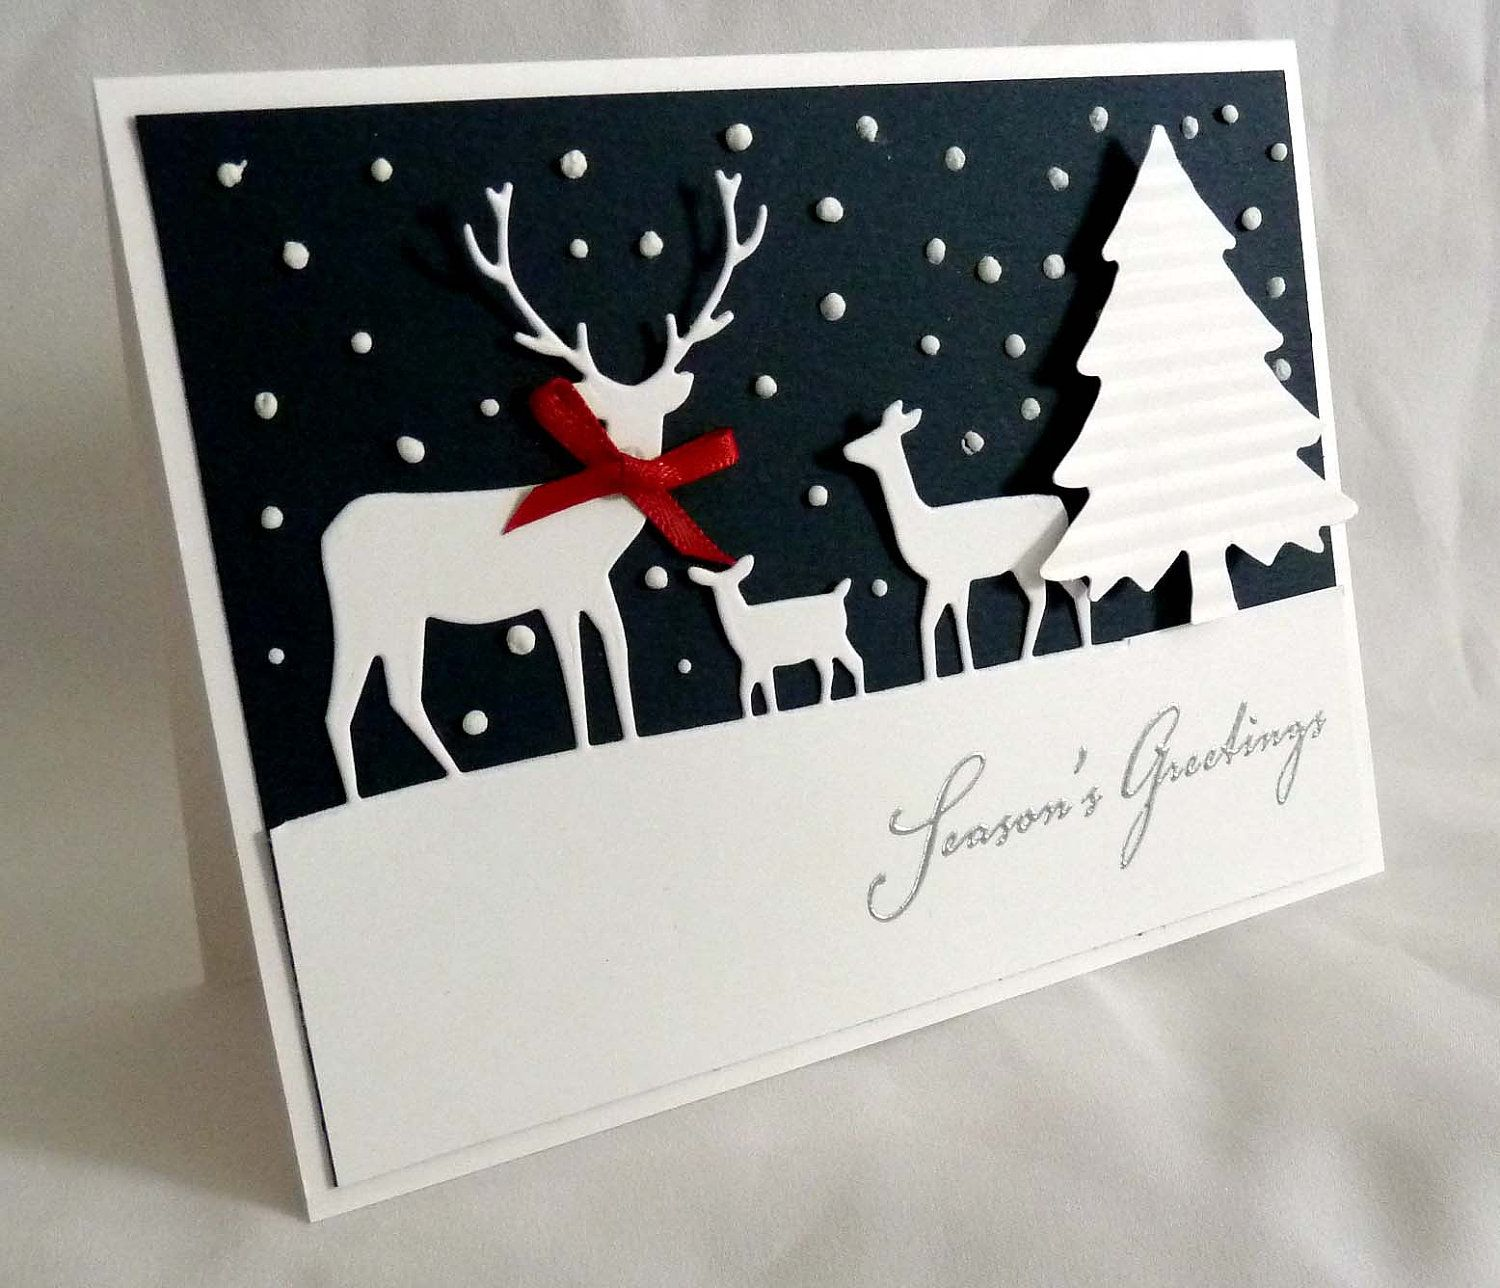 handmade Christmas card ... black and white .. die cut deer and tree ... white polka Dots on black background ... graphic look ...